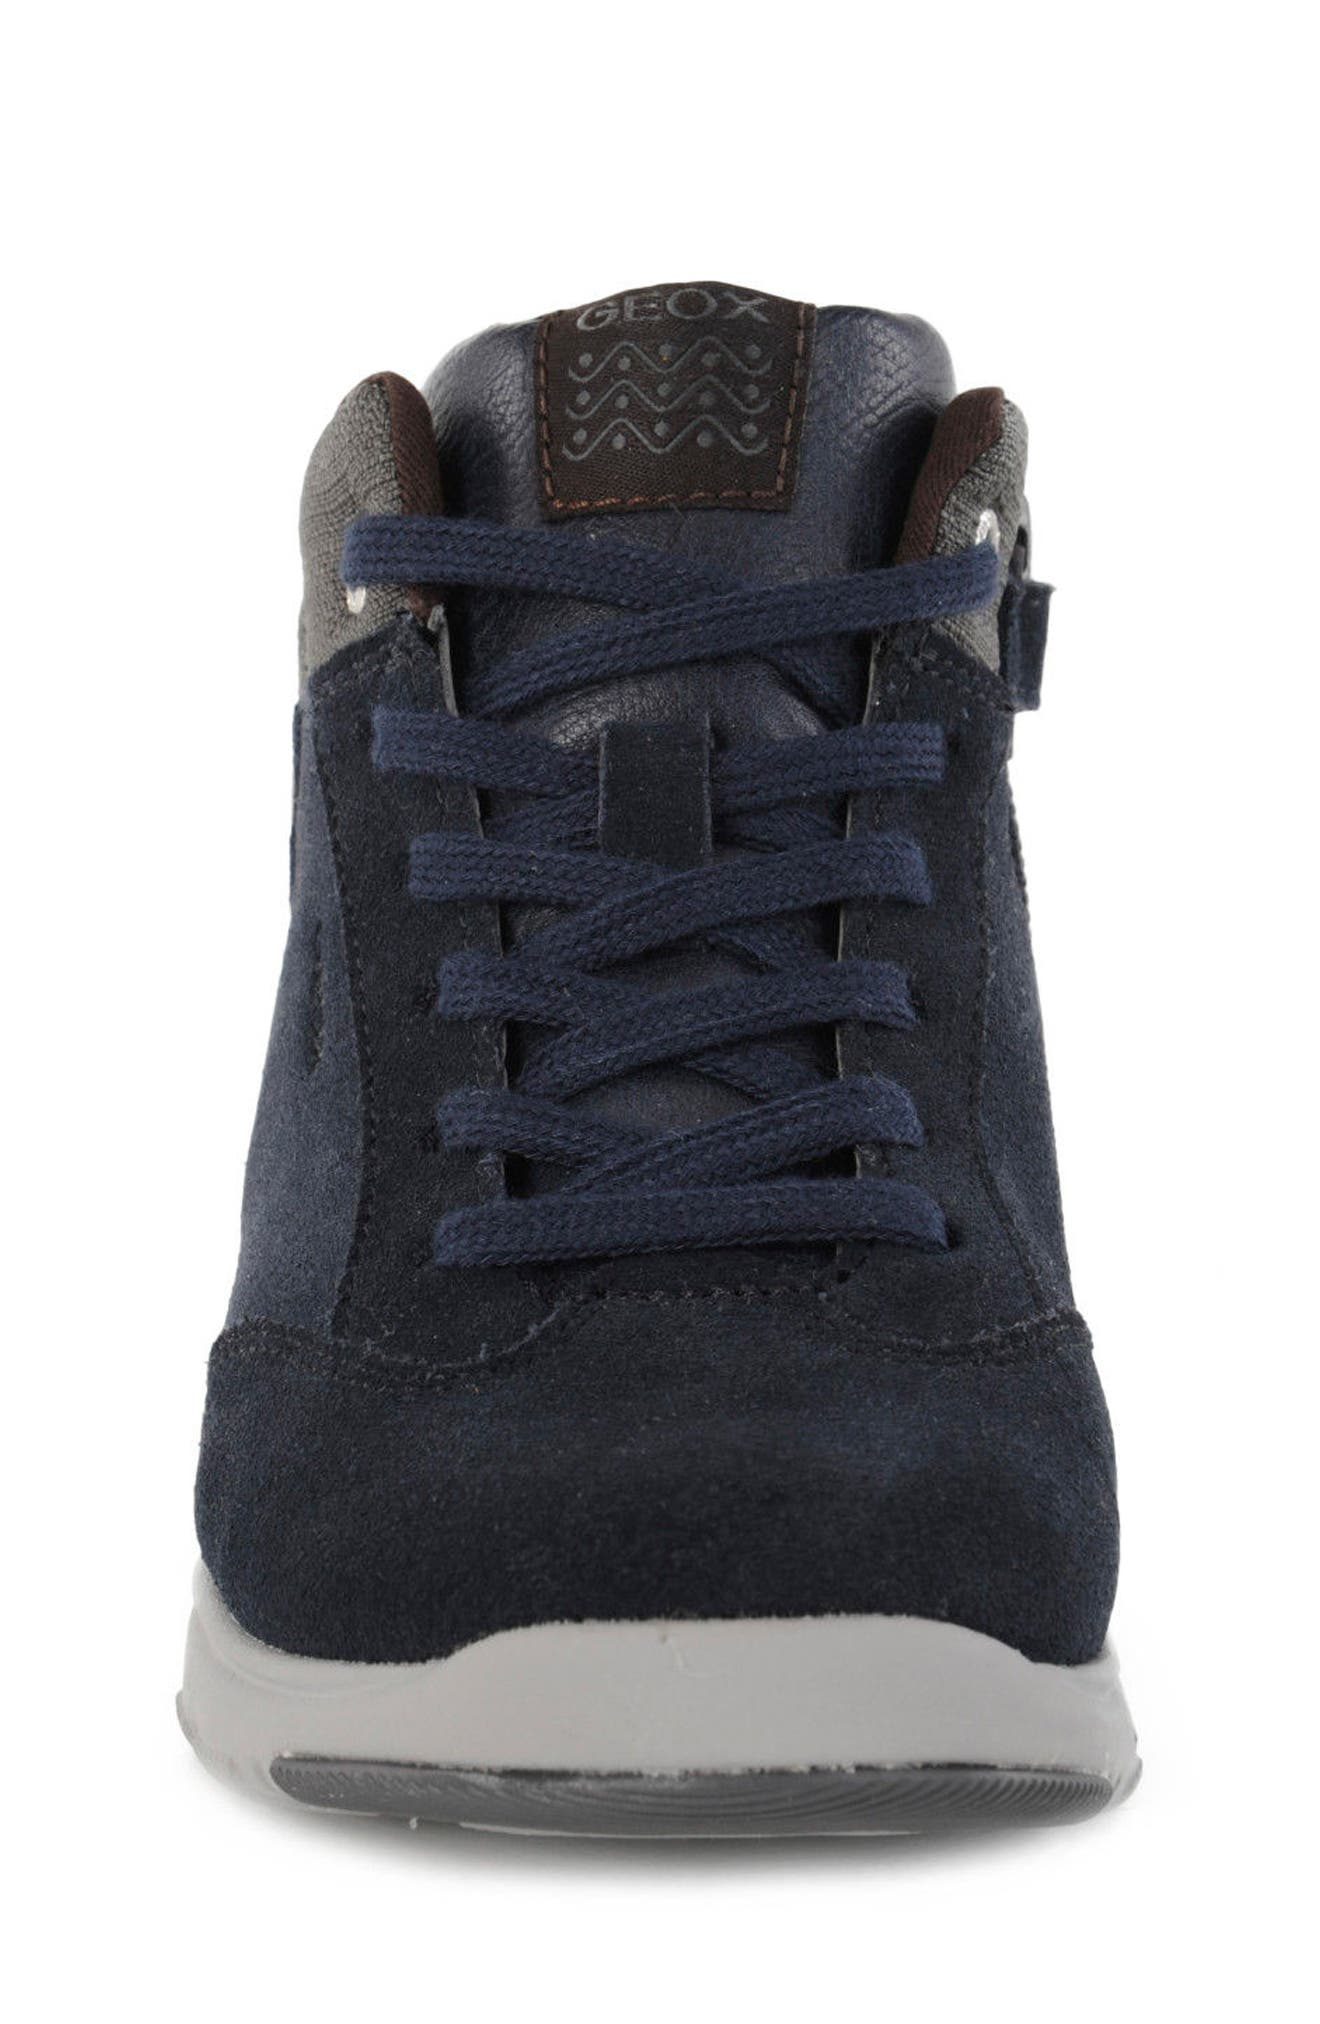 Xunday Mid Top Sneaker,                             Alternate thumbnail 12, color,